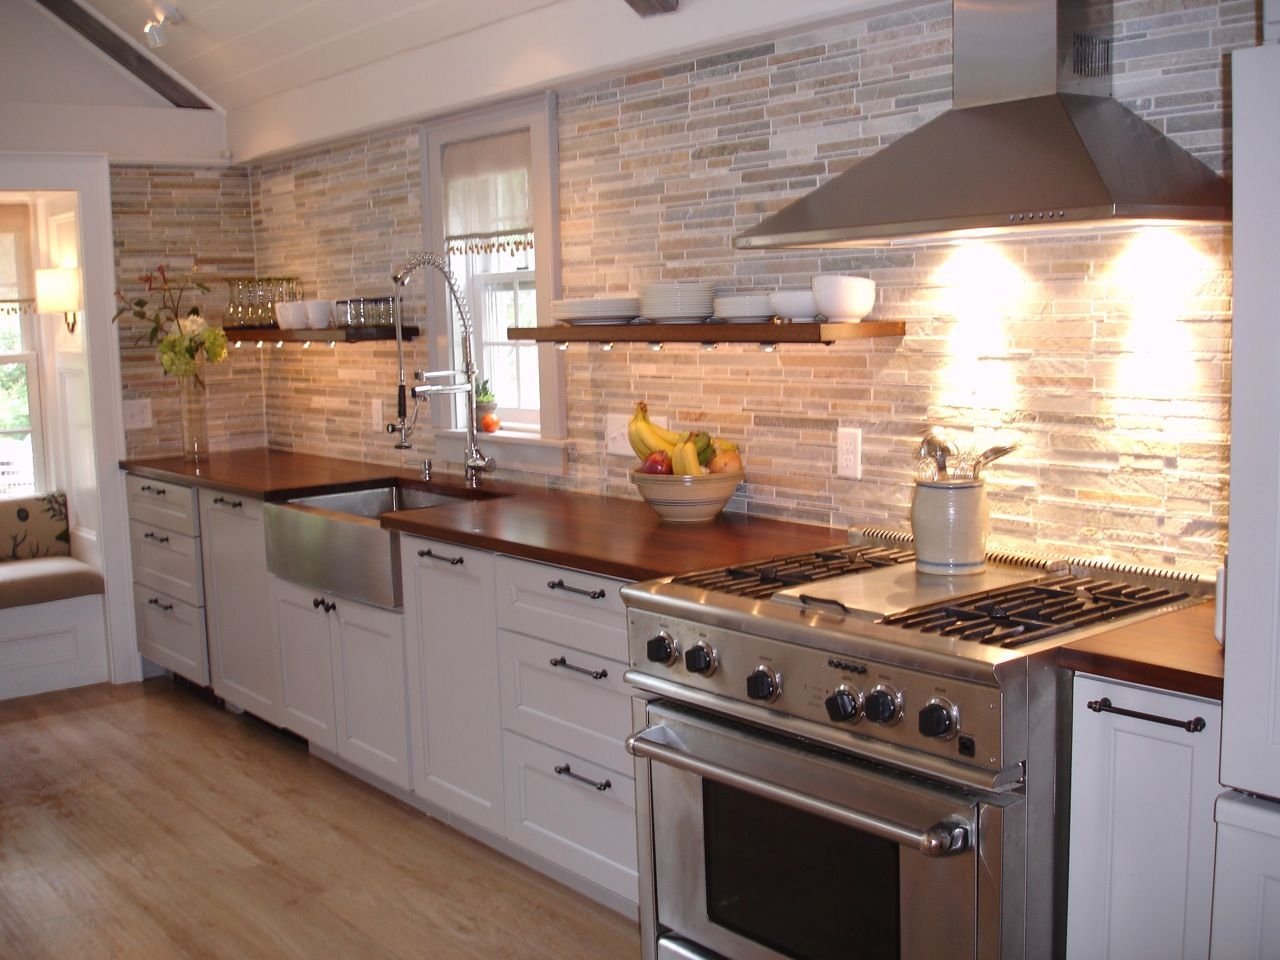 Mahogany Wood Countertop Provides A Warm Contrast To Stainless Steel And White Shaker Kitchen Cabinets